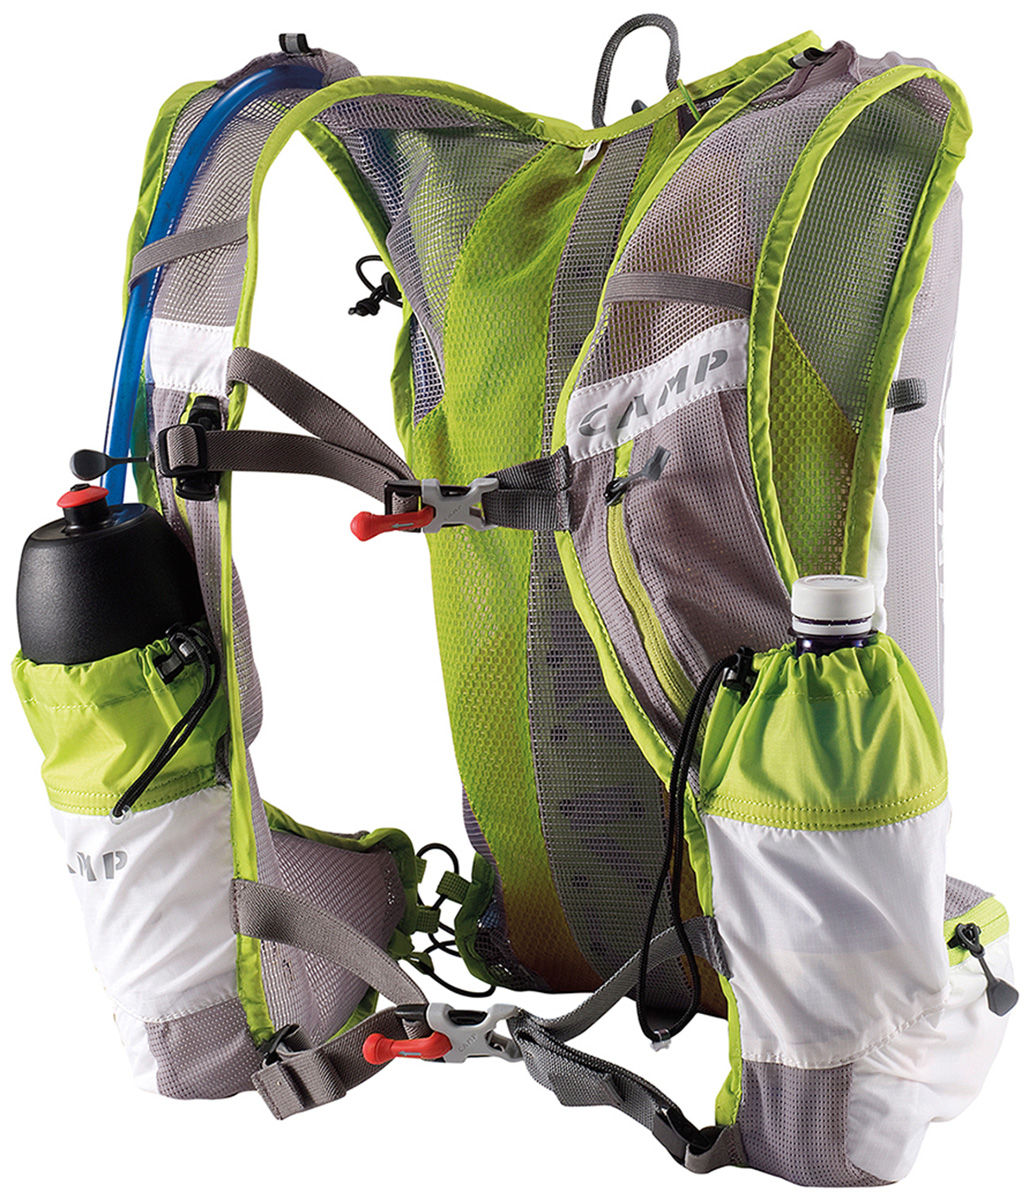 The Trail Vest Light By Camp Is A Lightweight Trail